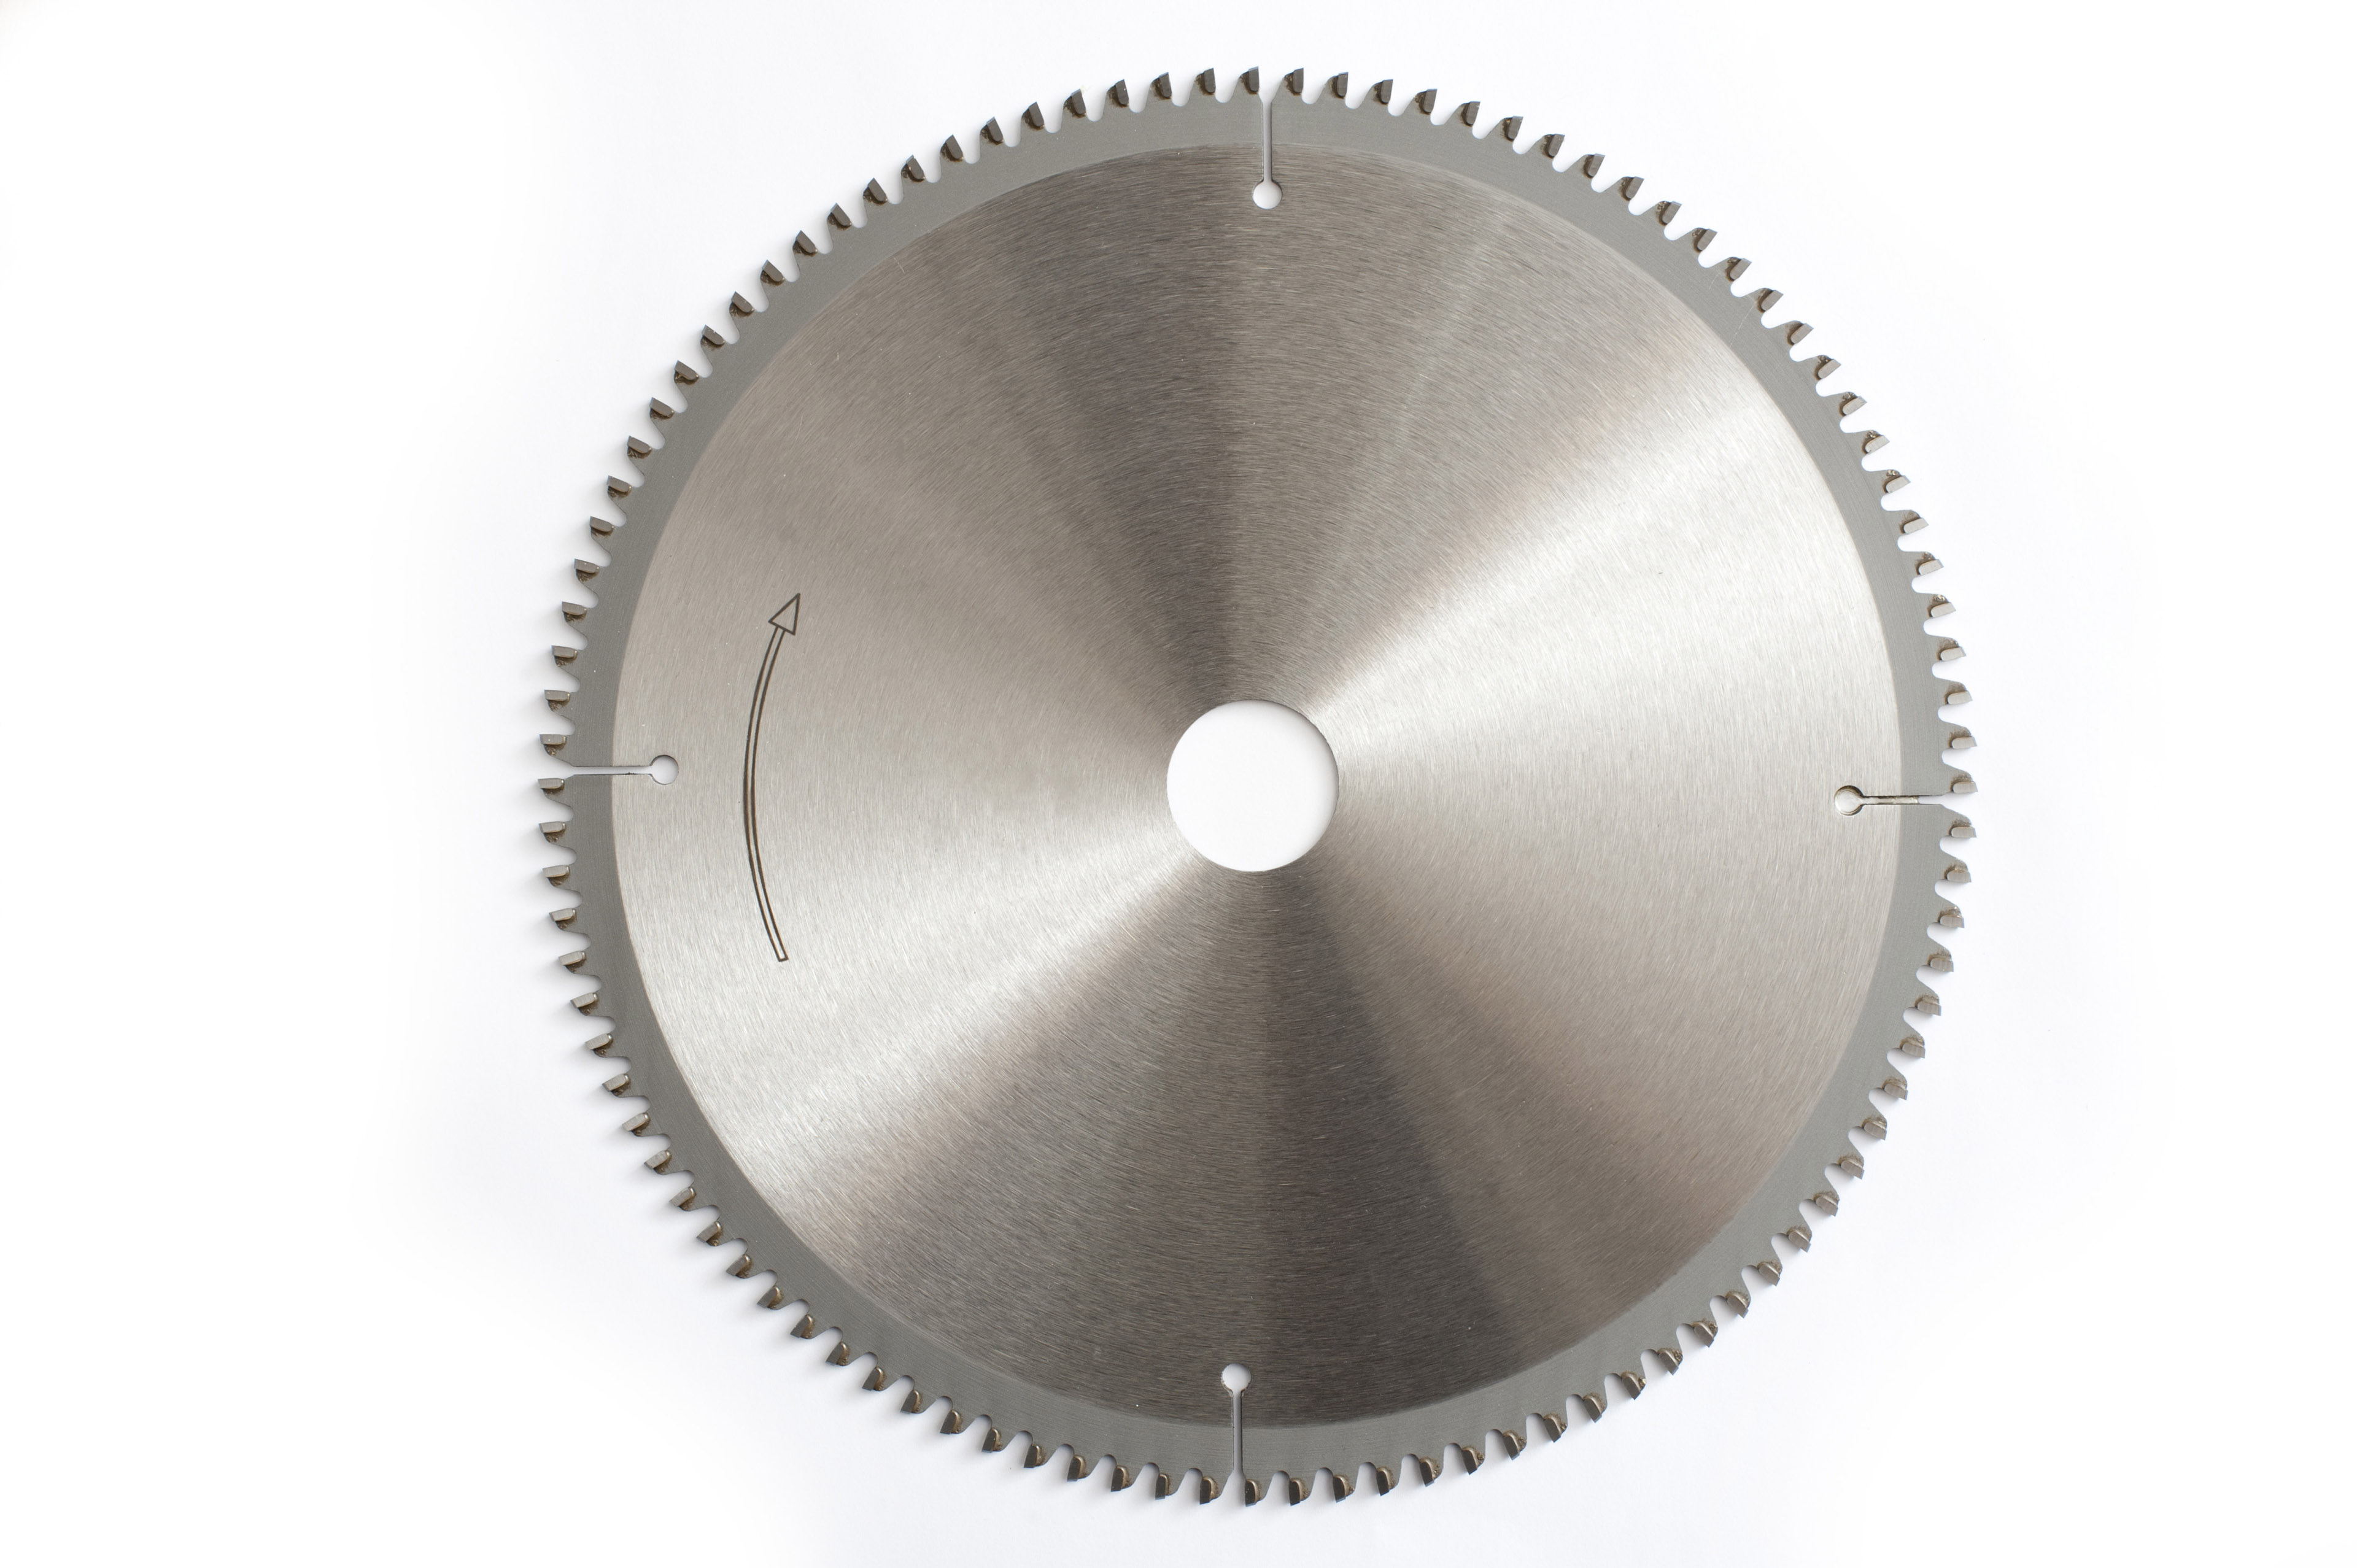 A metallic metal circular saw wheel blade isolated on a plain white background.